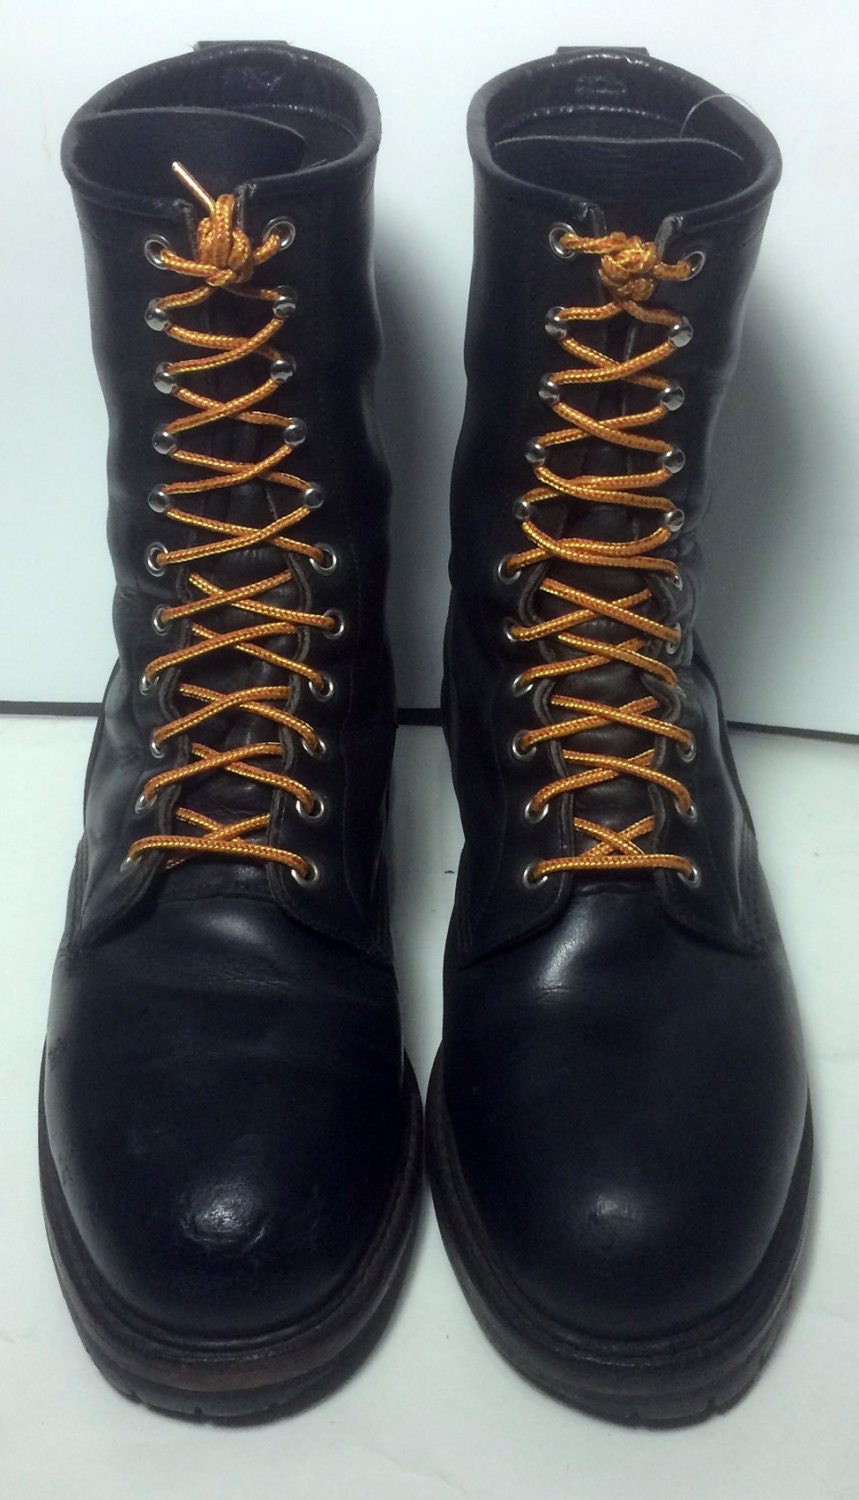 Red Wing 174 Steel Toe Logger Black Leather Work Boots Made In